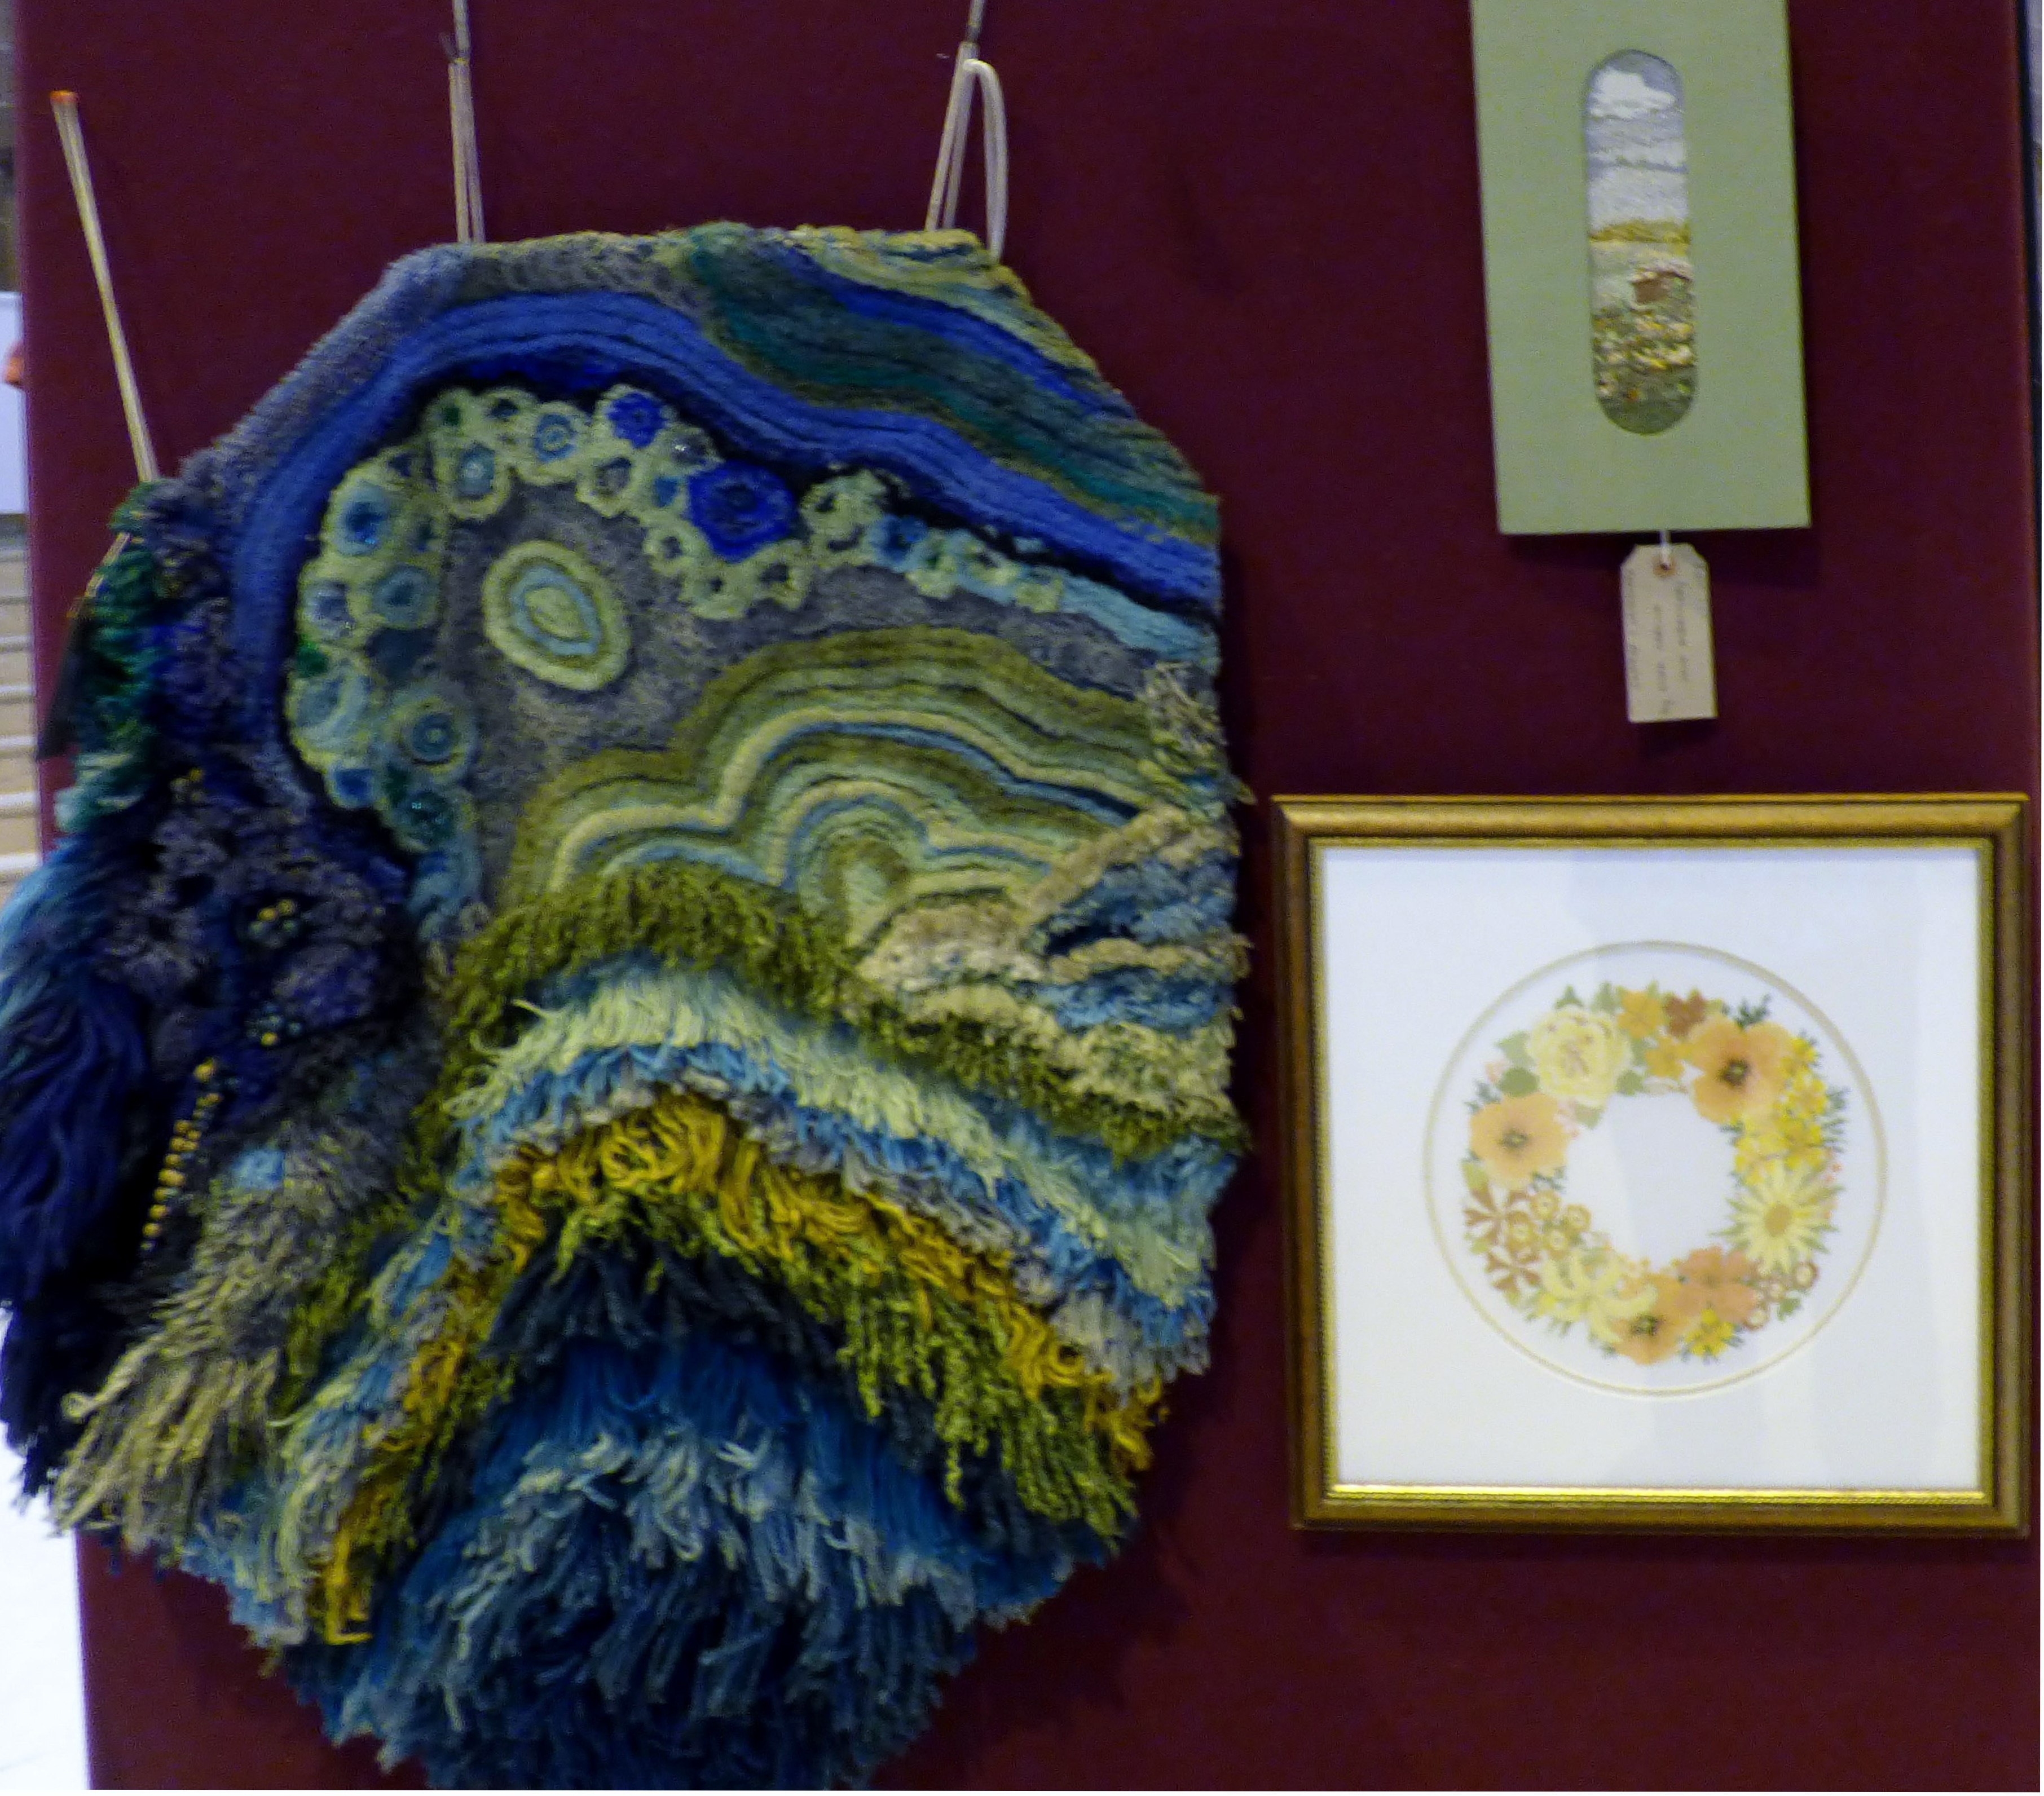 MALACHITE (1975) by Pat Stock, COTTAGE AND LANDSCAPE by Dora Carline and GOLDEN WEDDING by Barbara Reece at 60 golden Years exhibition 2016